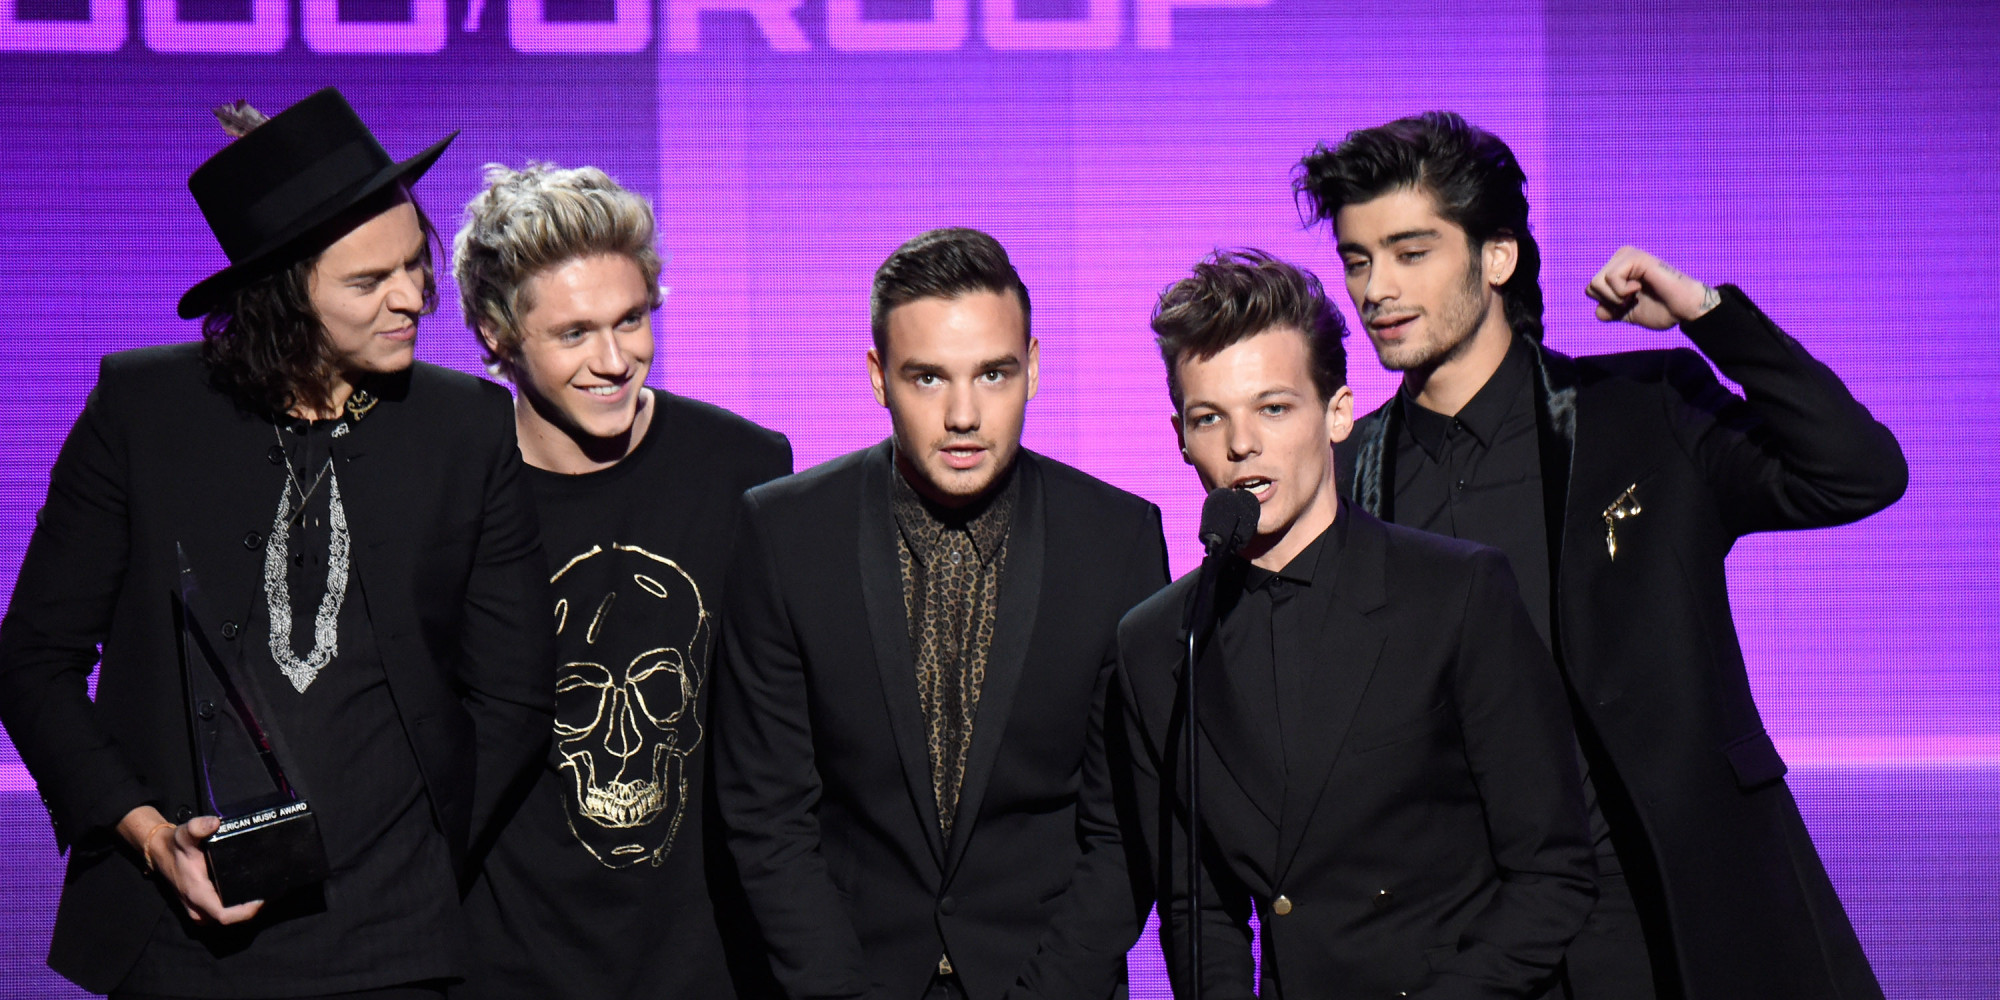 one direction 2014 - Google Search | One direction, 1080p ... |One Direction Amas 2014